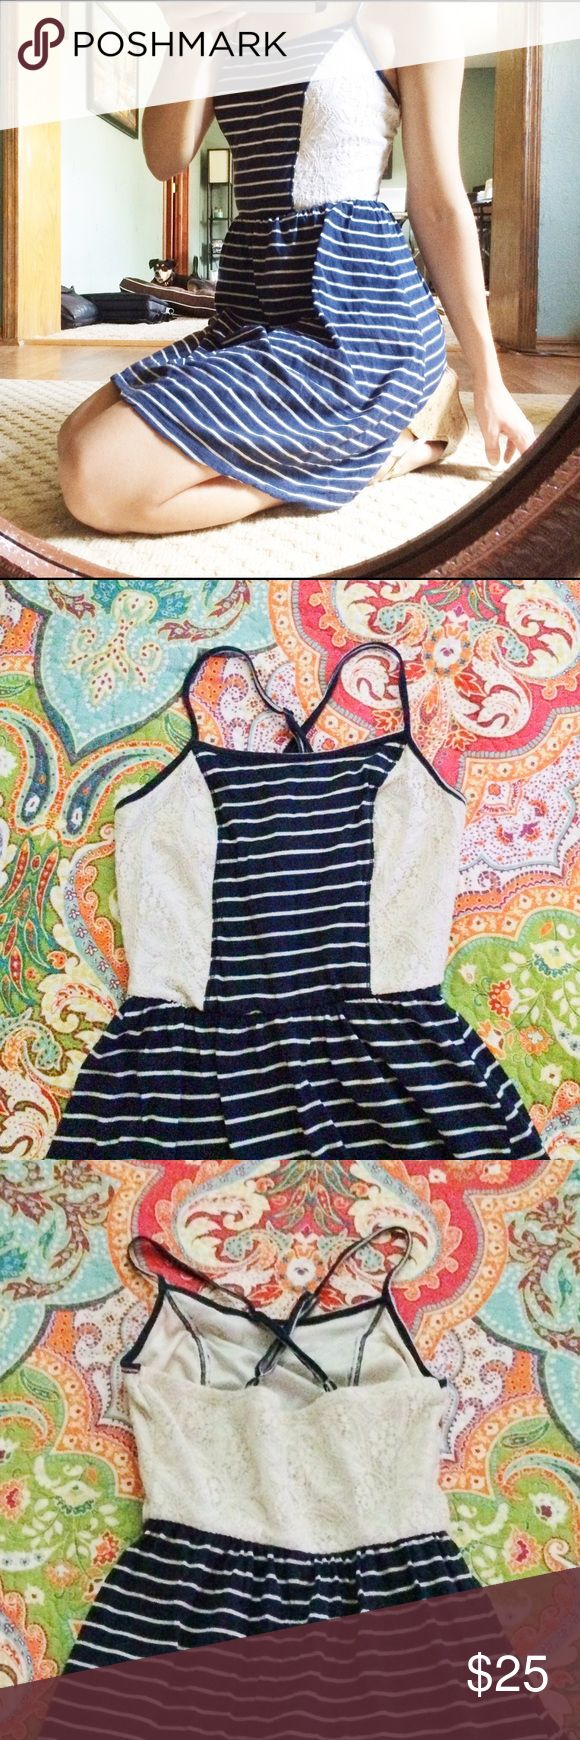 Nautical Navy and Cream Summer Dress Fully lined jersey and lace summer dress. Worn once, still in amazing, like-new condition. Adjustable straps. Make me an offer! Maurices Dresses Mini